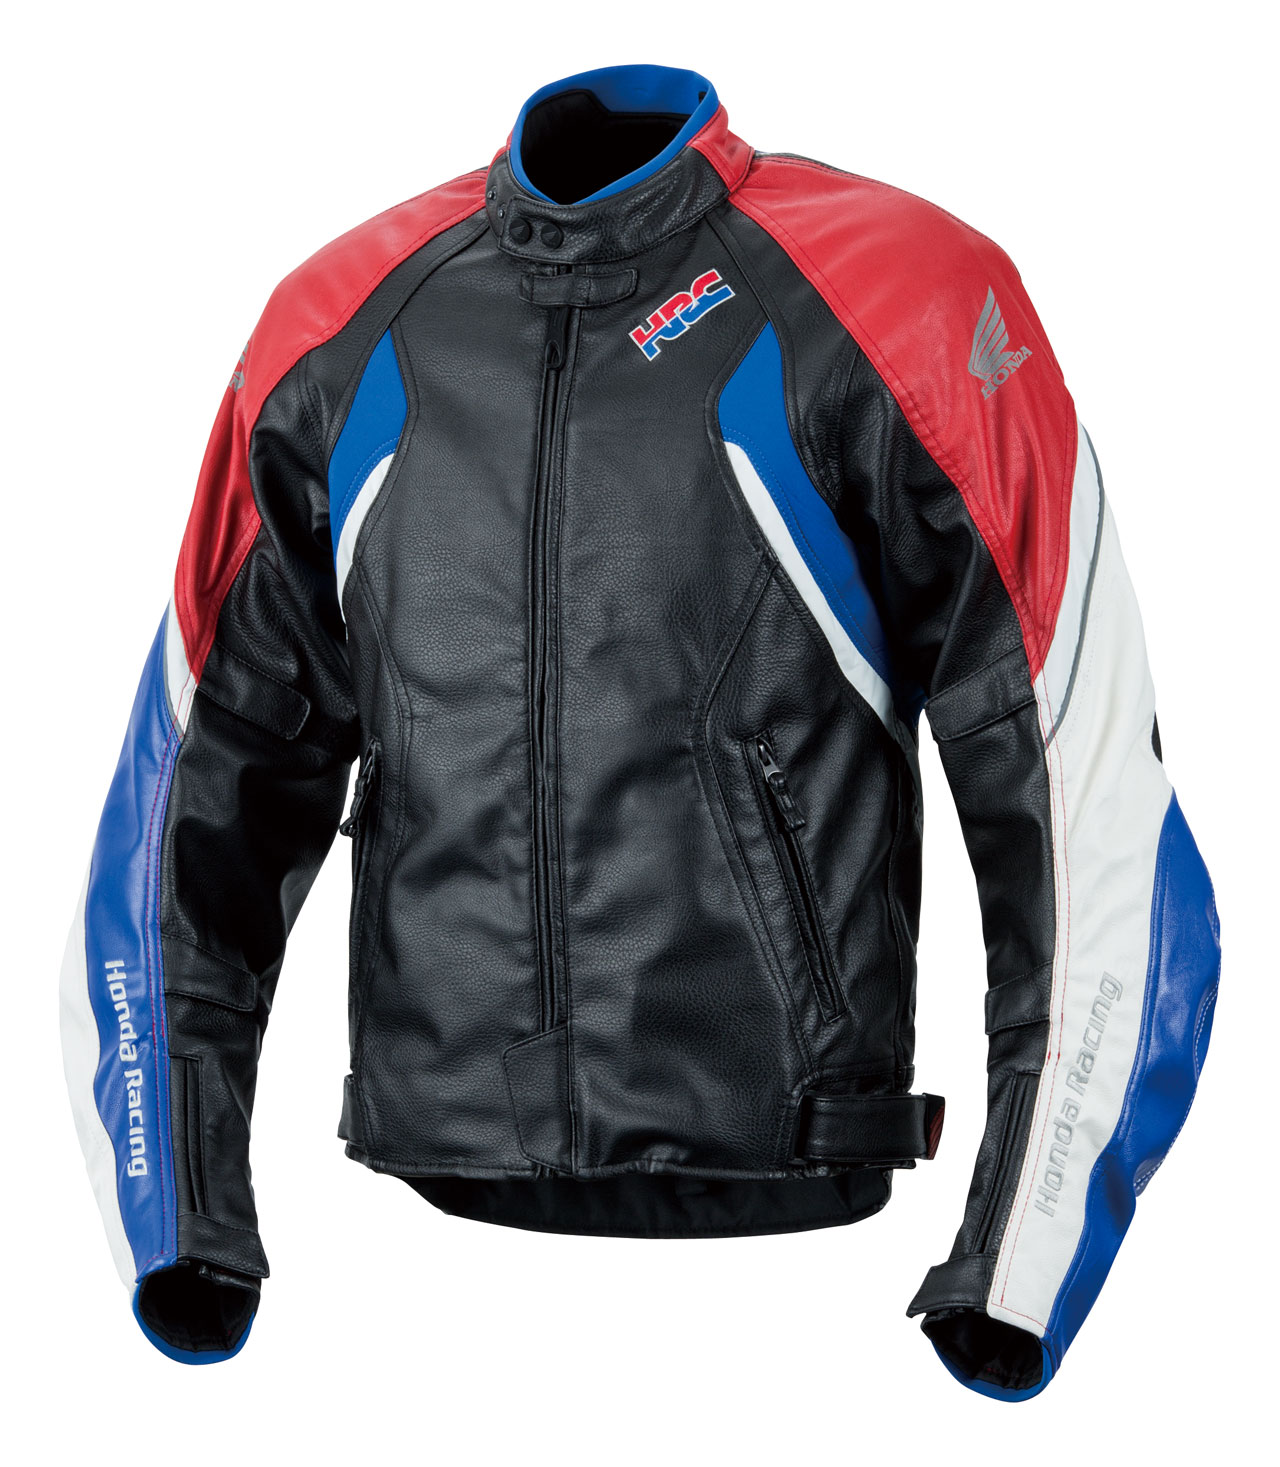 Honda Riding Gear >> Honda Riding Gear Hrc Grace Riders Jacket 0syes W3k Hs